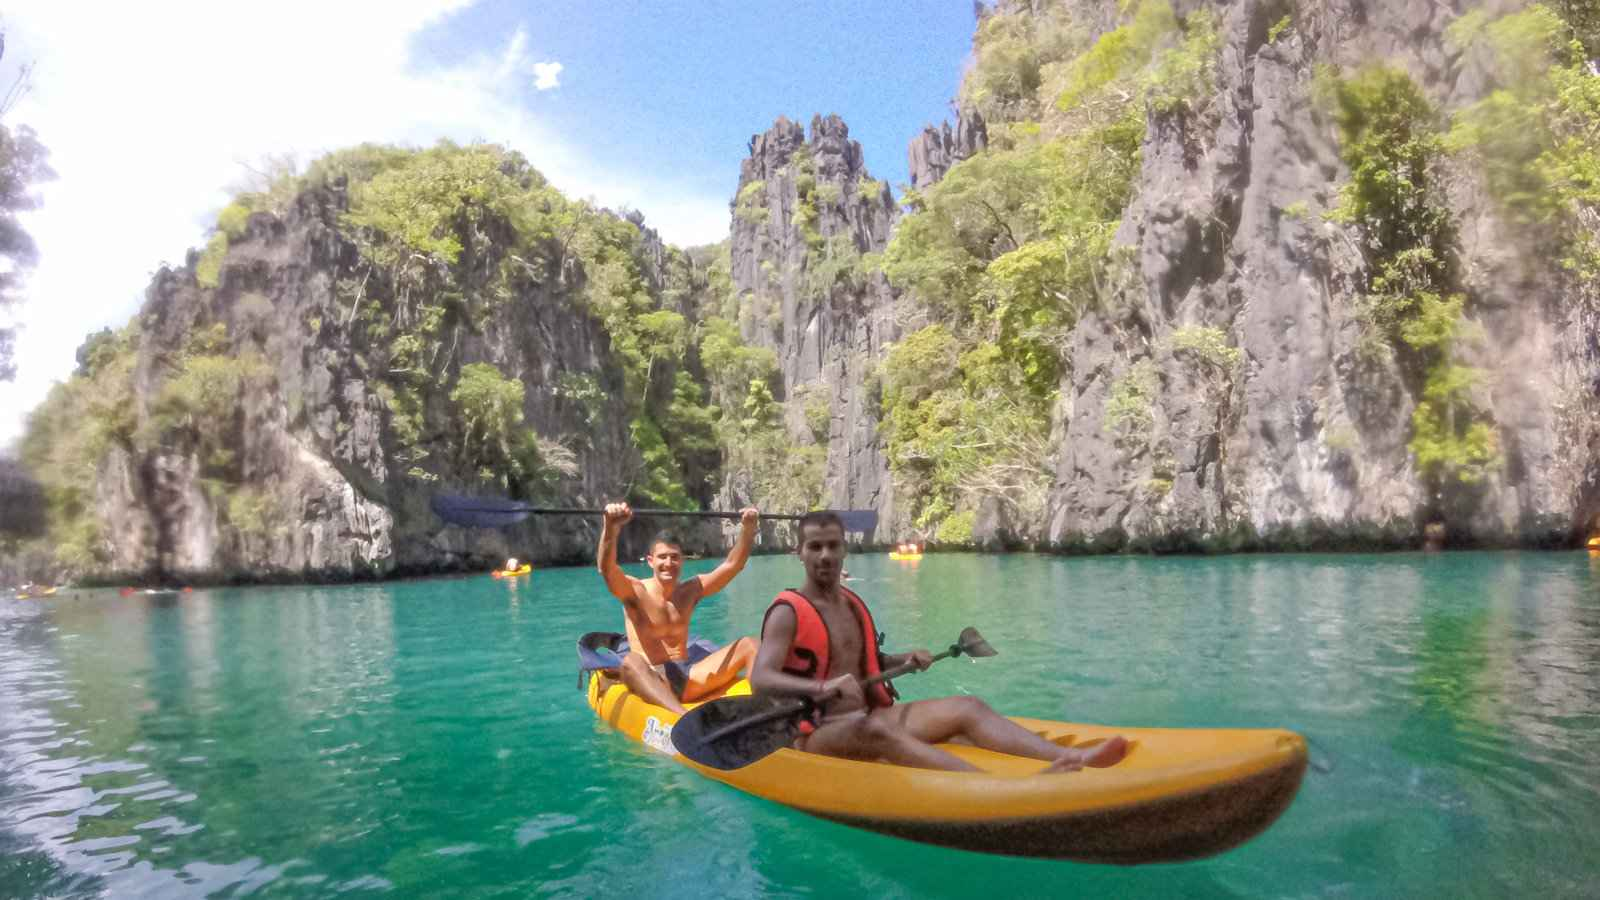 Tour A from El Nido is a great mix of snorkeling, kayaking and swimming in Palawan